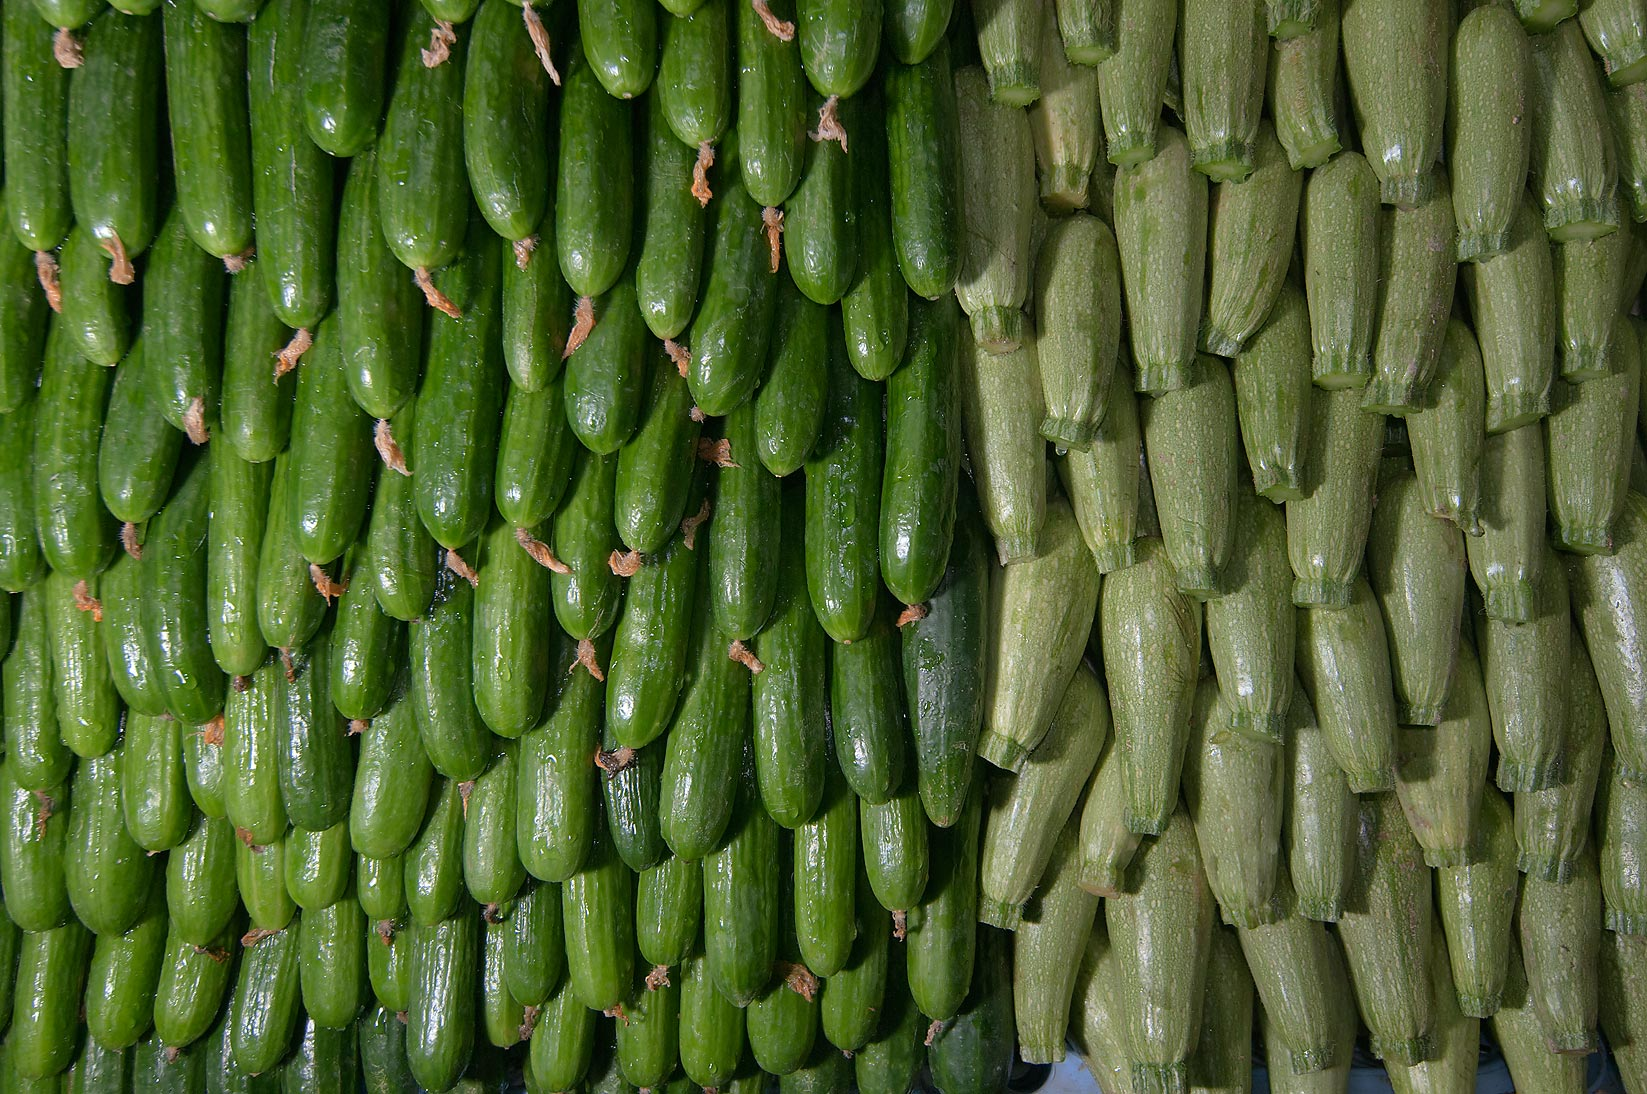 Masses of cucumbers in vegetable market. Doha, Qatar